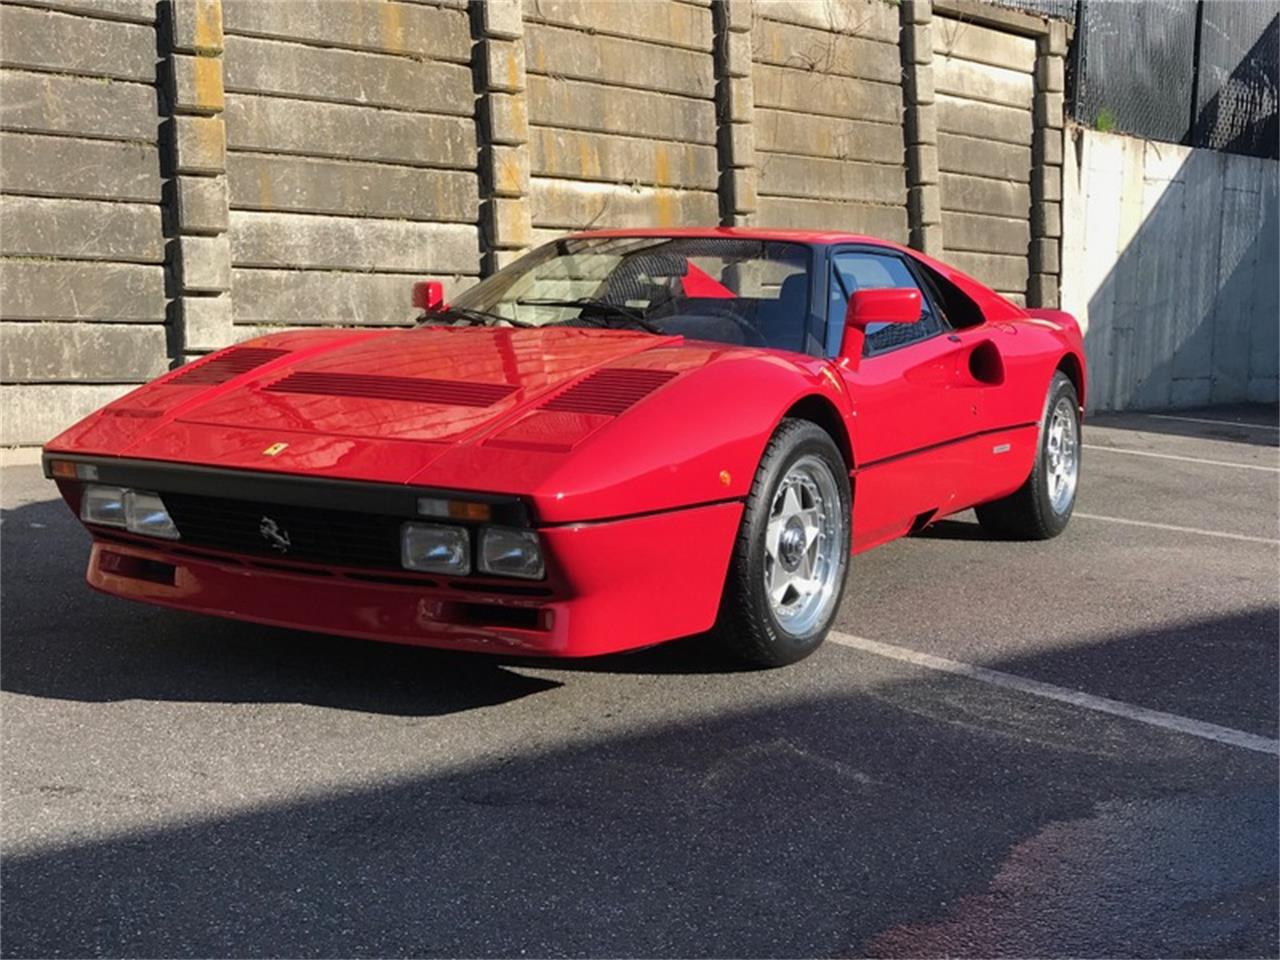 1985 Ferrari GTO for sale in Huntington Station, NY – photo 25